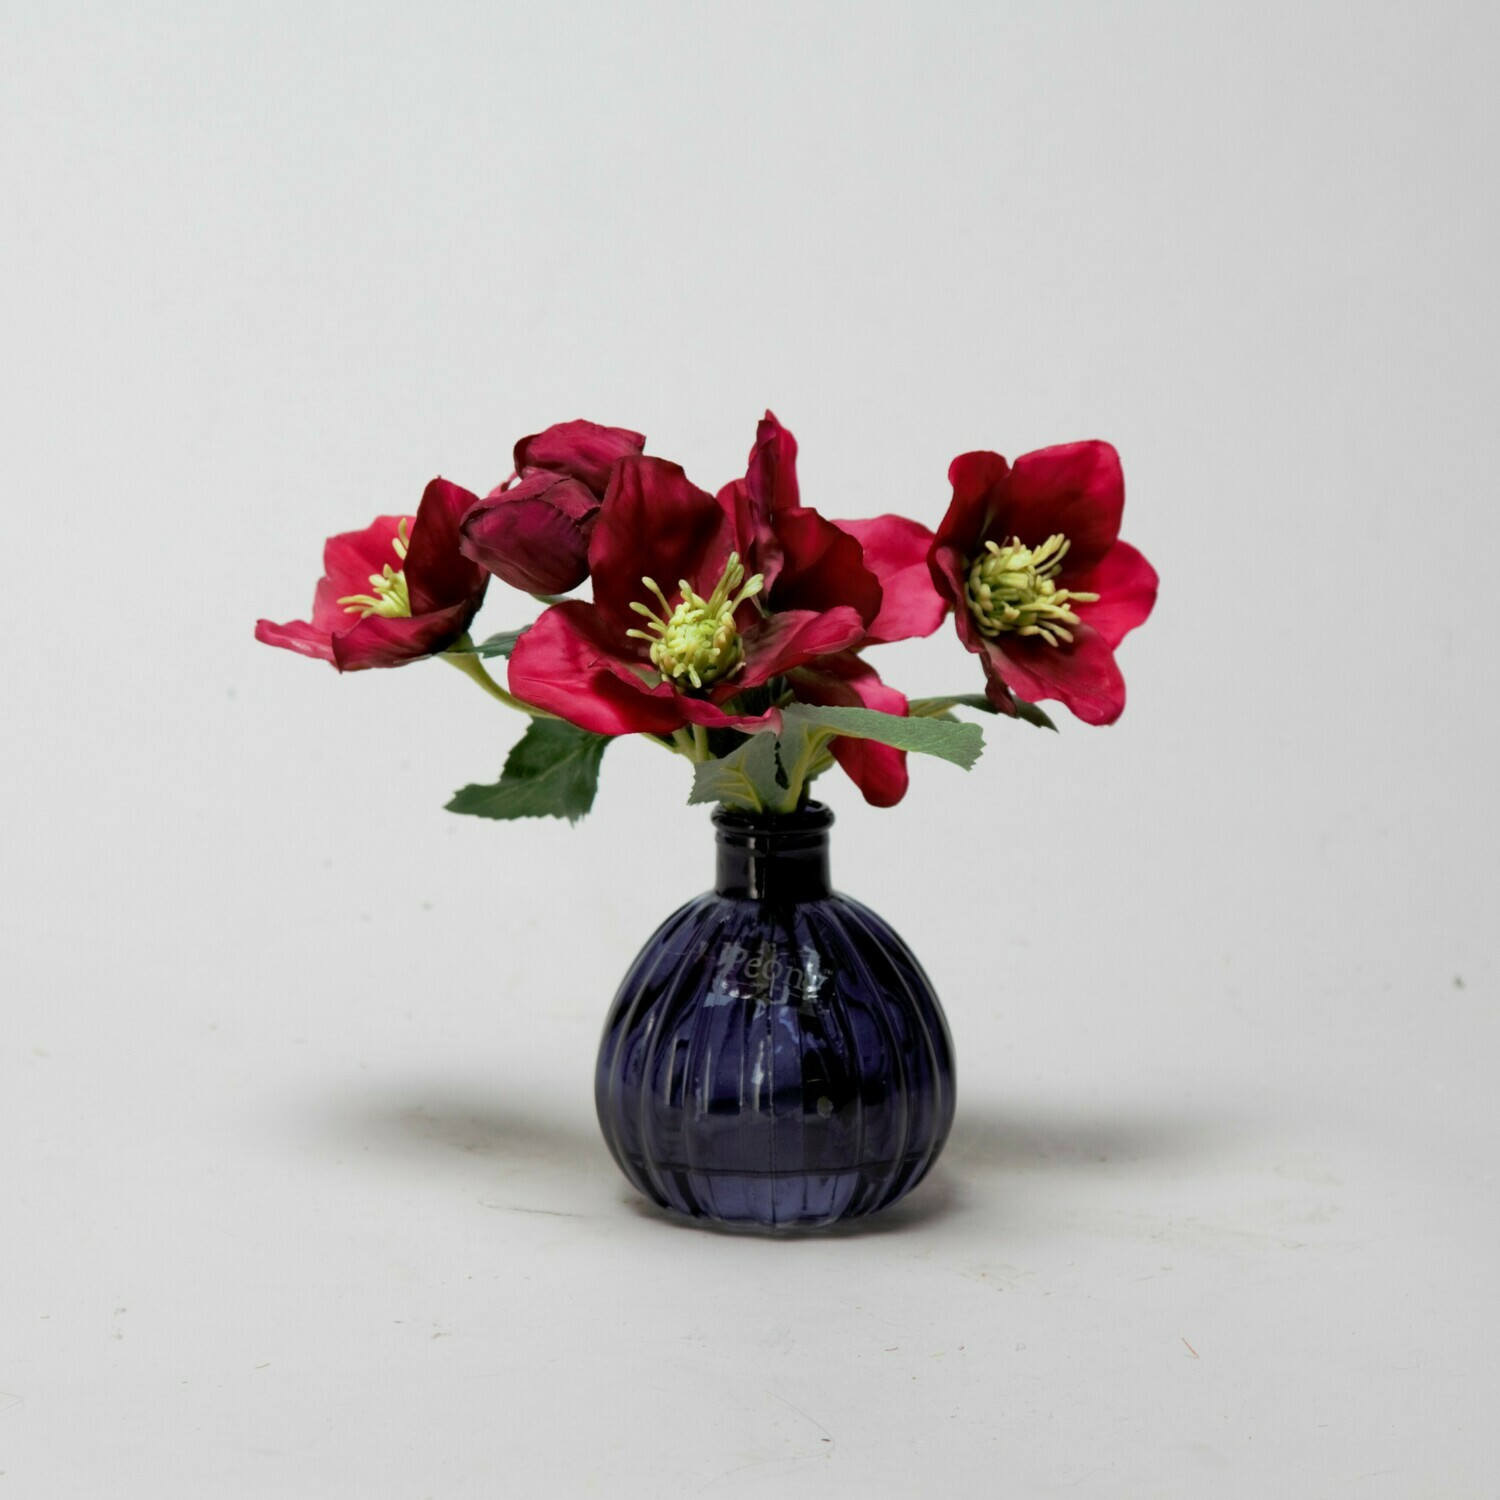 Magenta Hellebores in a black bottle